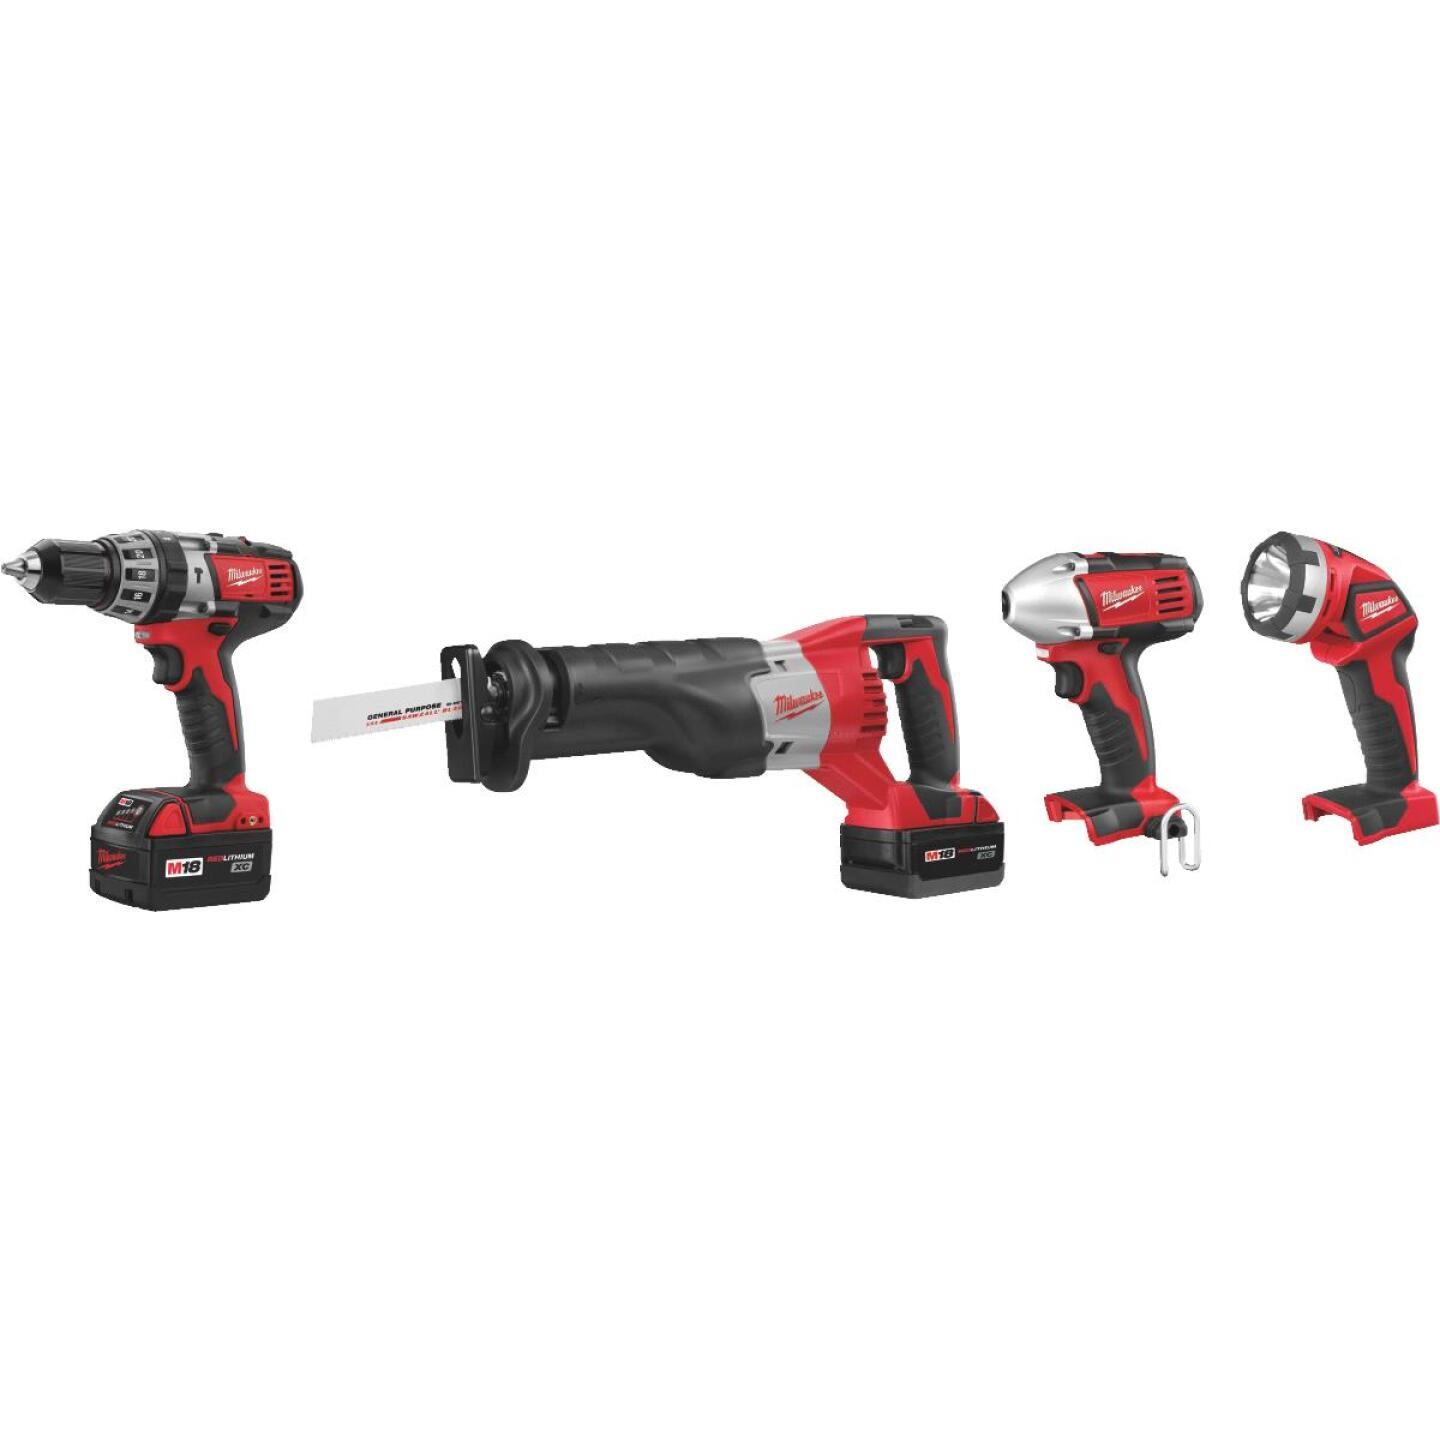 Milwaukee 4-Tool M18 Lithium-Ion Hammer Drill, Reciprocating Saw, Impact Driver & Work Light Cordless Tool Combo Kit Image 2